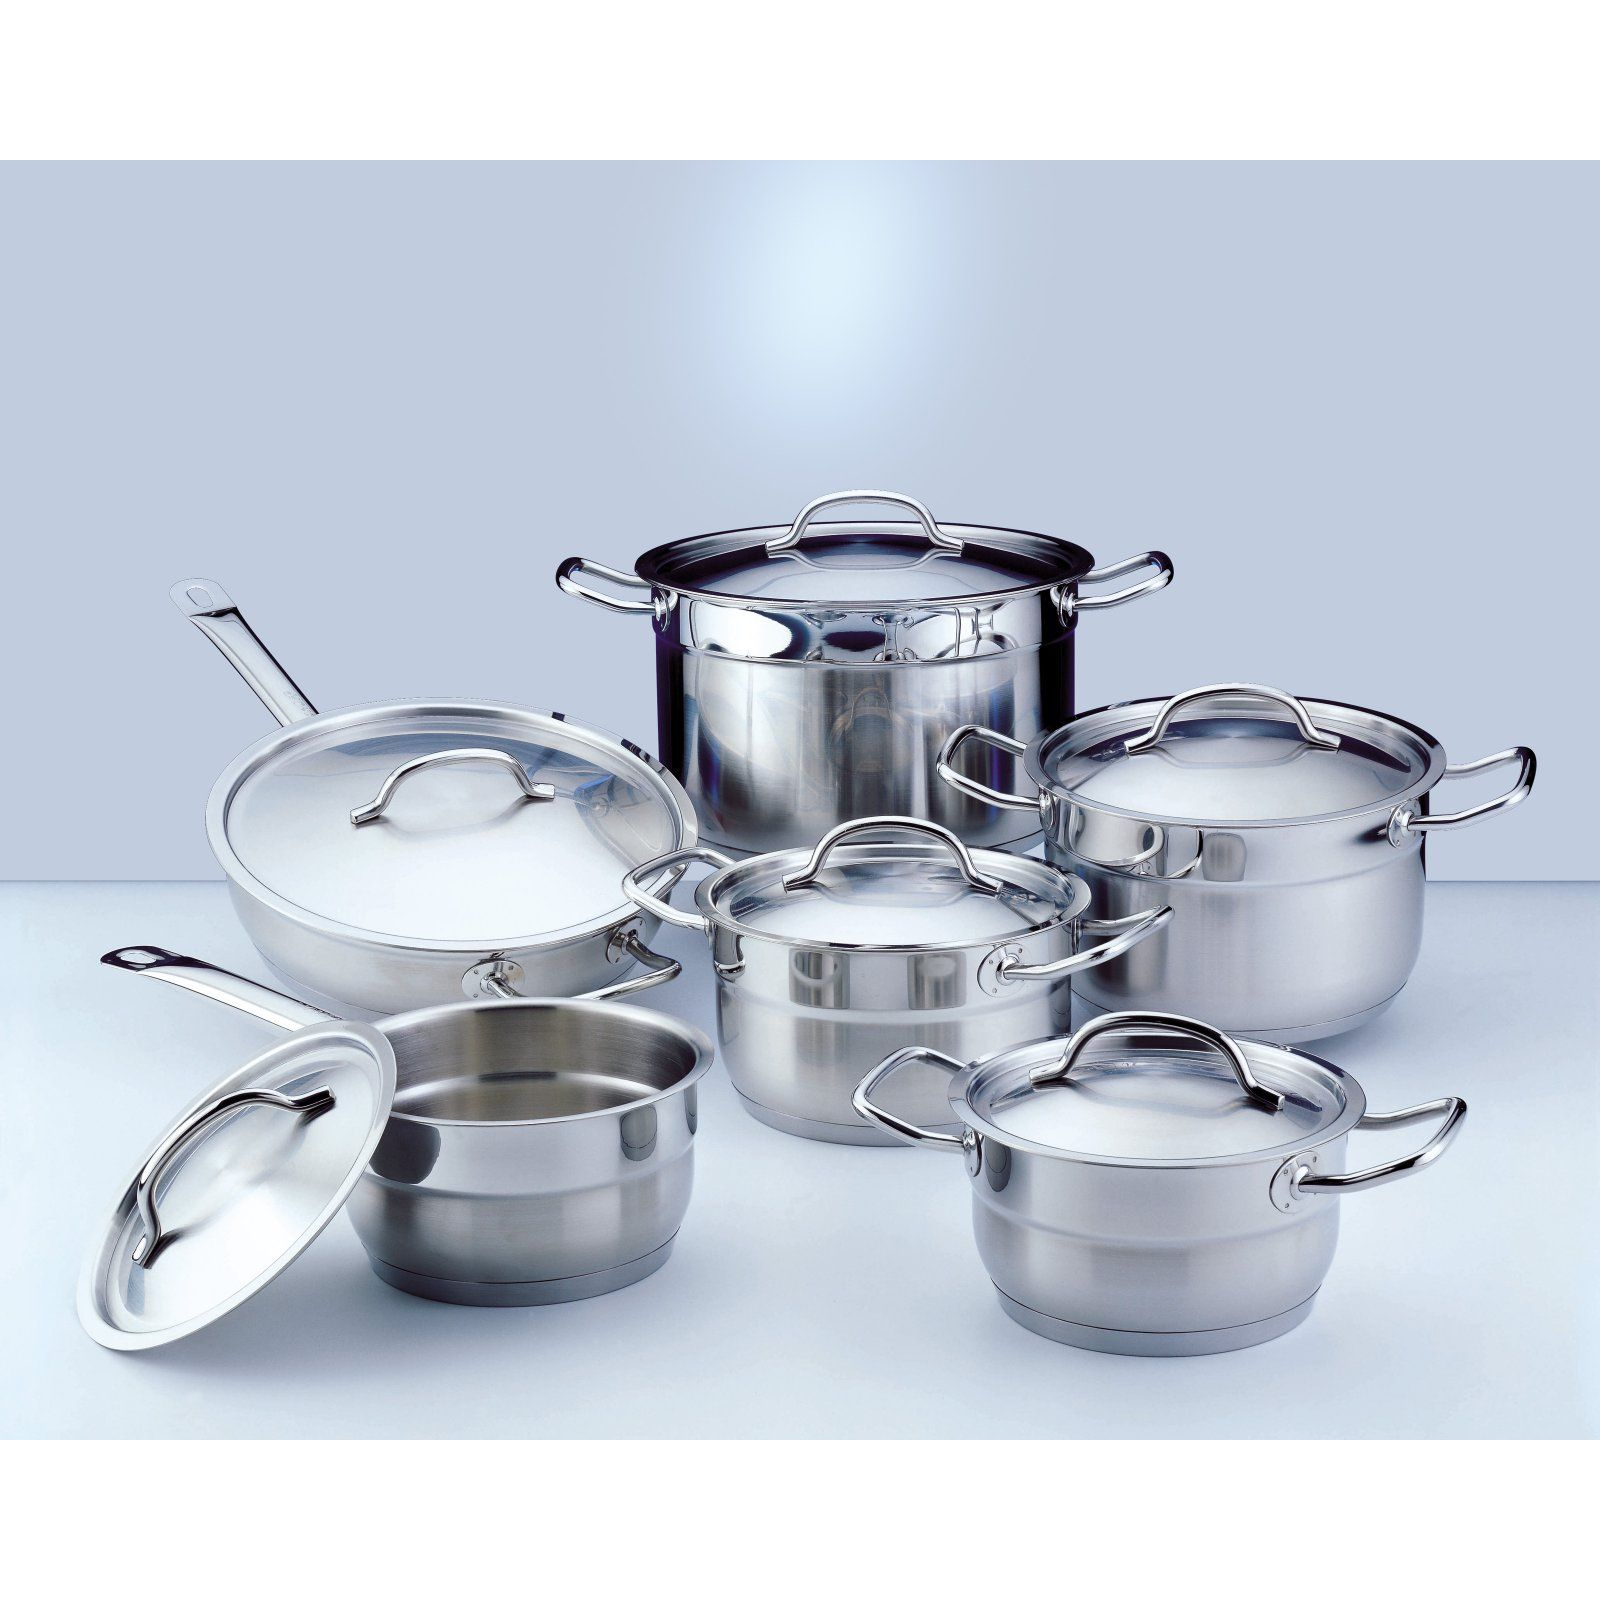 Berghoff Hotel Line 12 Piece Cookware Set Cookware Set Stainless Steel Cookware Cookware Set Stainless Steel